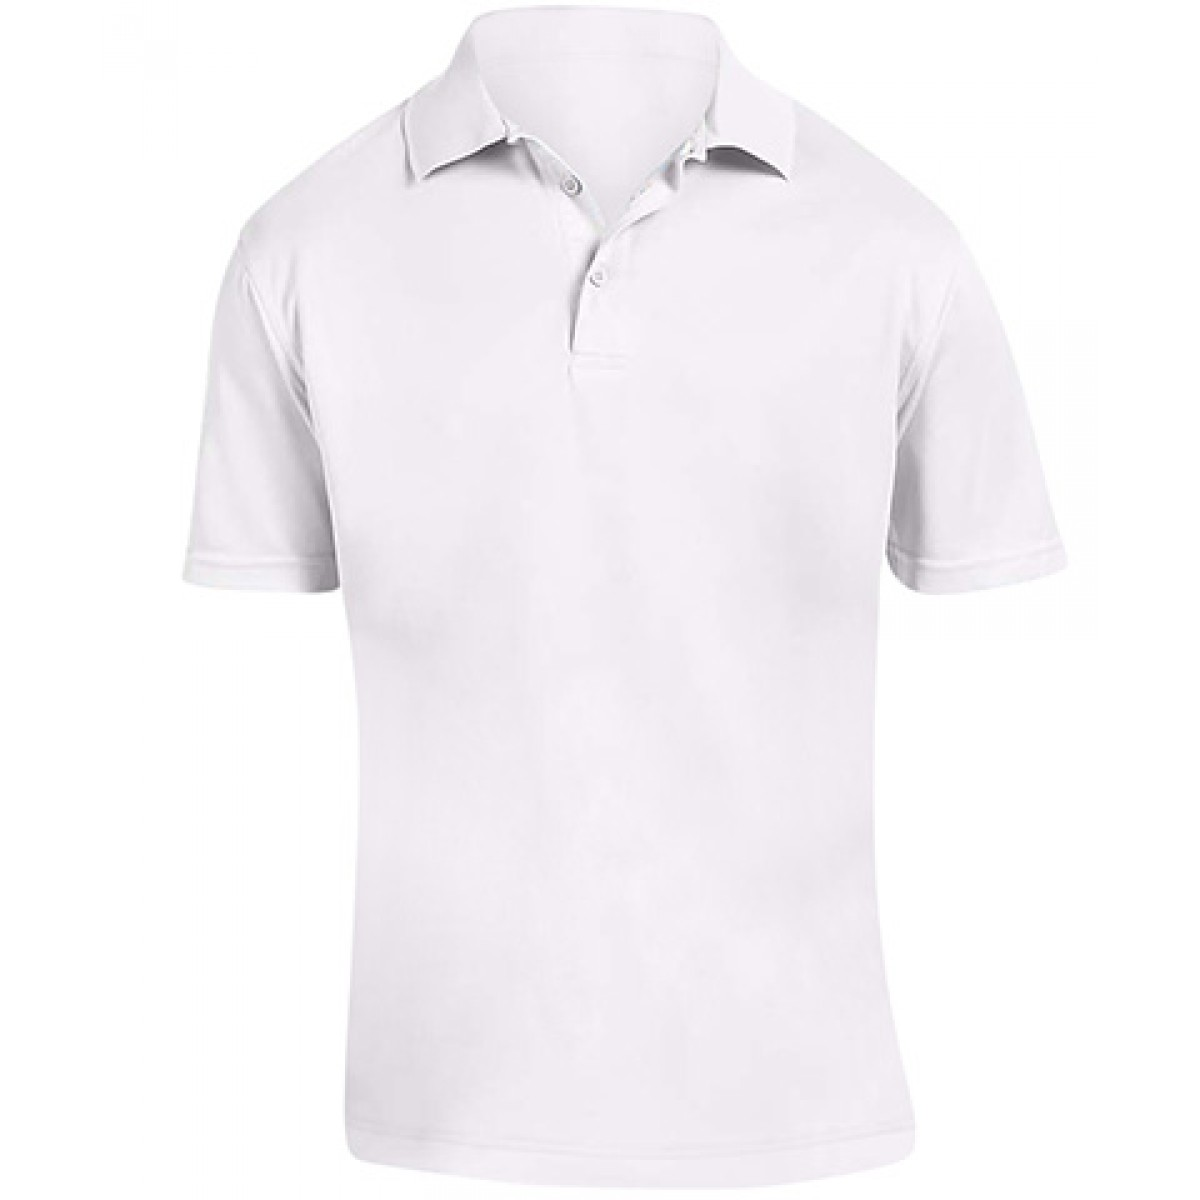 Men's 4 oz. Polytech Polo-White-2XL